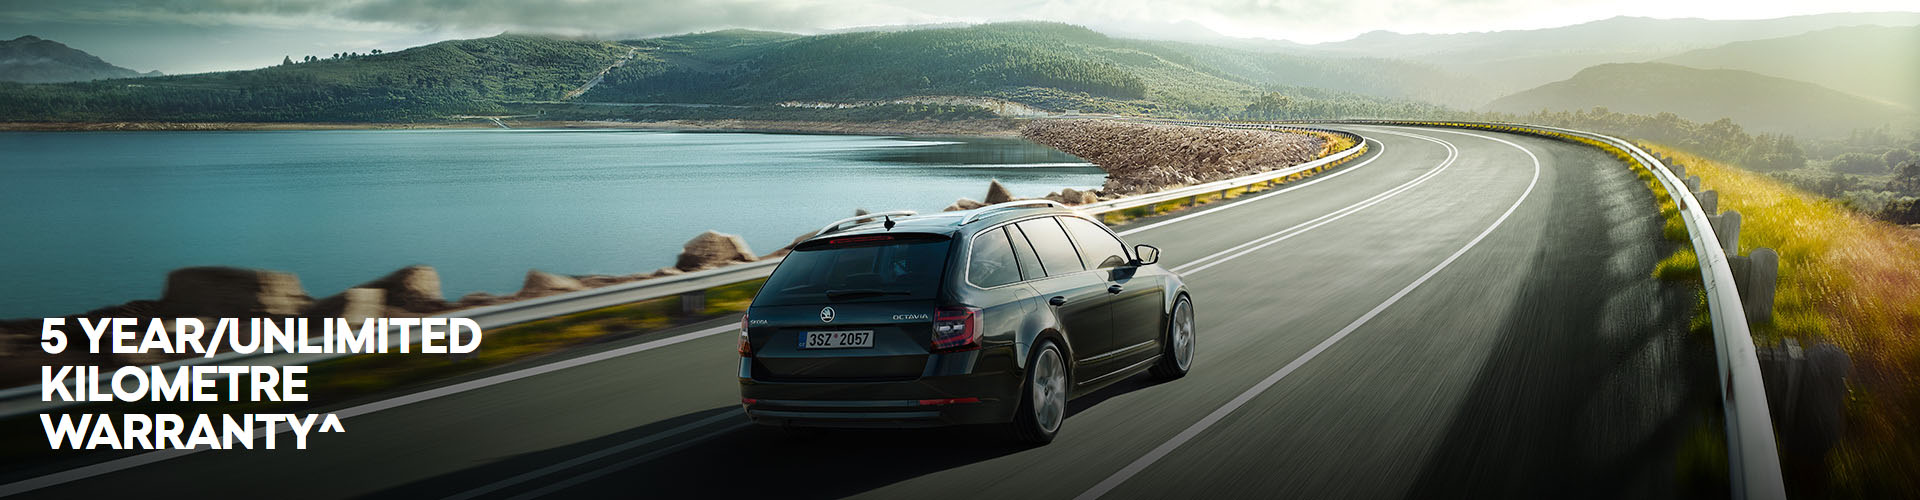 ŠKODA 5 Year/Unlimited Kilometre Warranty